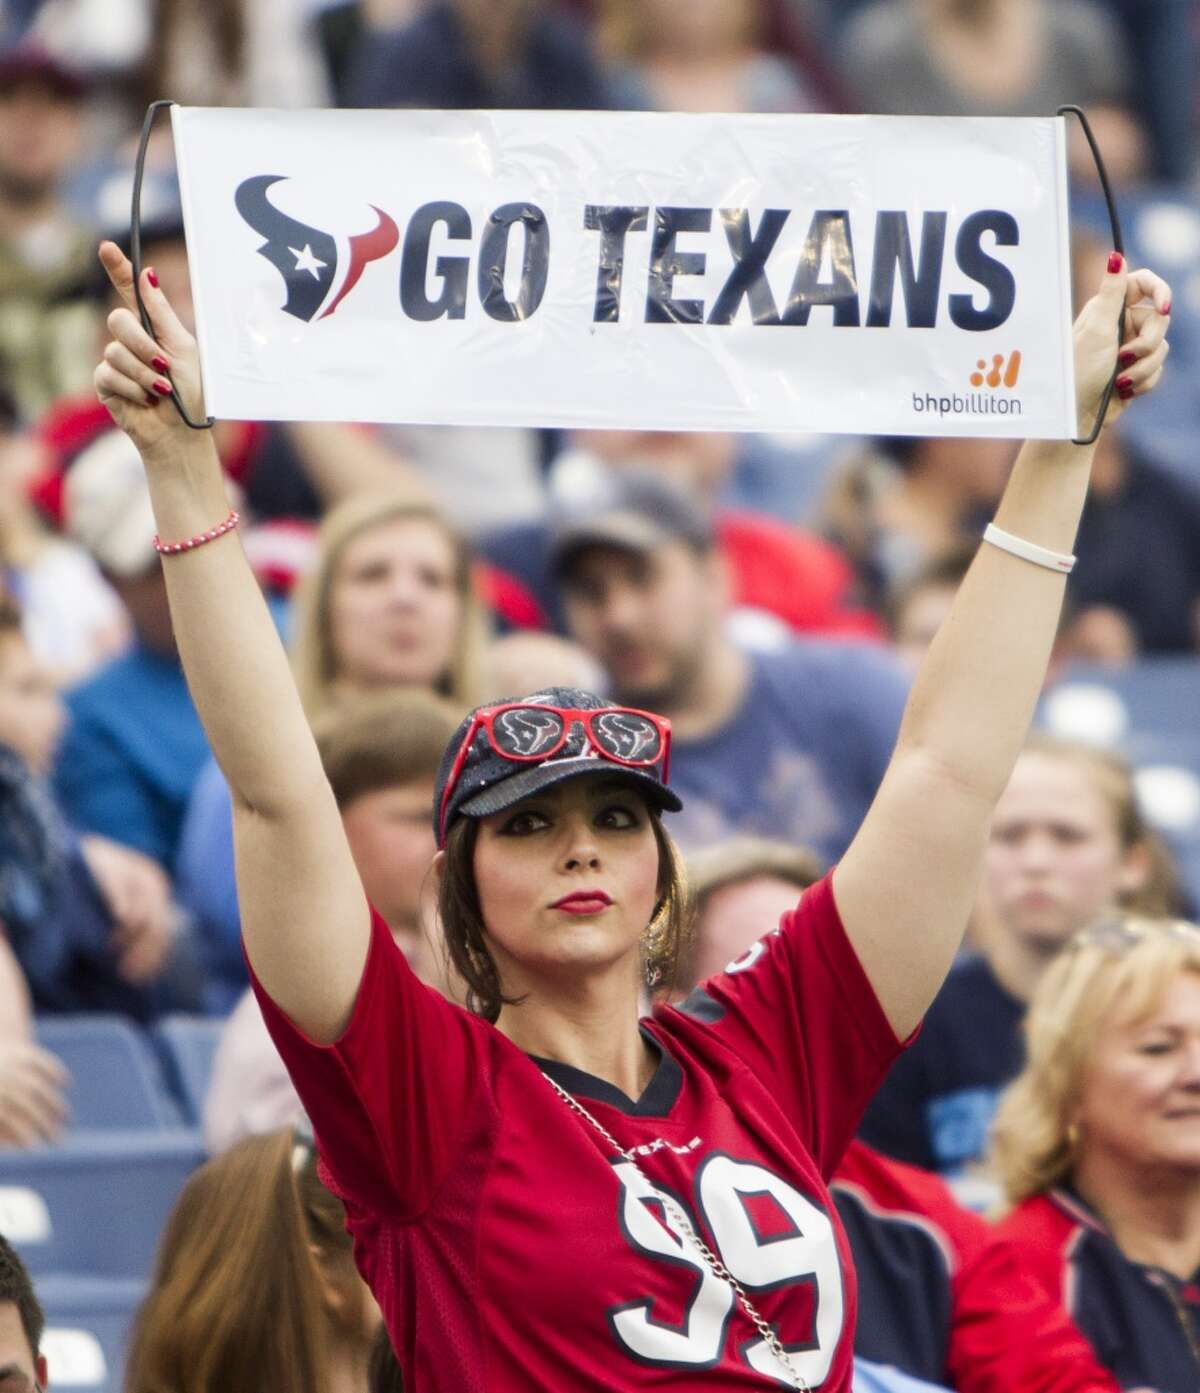 A Houston Texans fans cheers during the fourth quarter of an NFL football game against the Tennessee Titans at Nissan Stadium on Sunday, Dec. 27, 2015, in Nashville. ( Brett Coomer / Houston Chronicle )